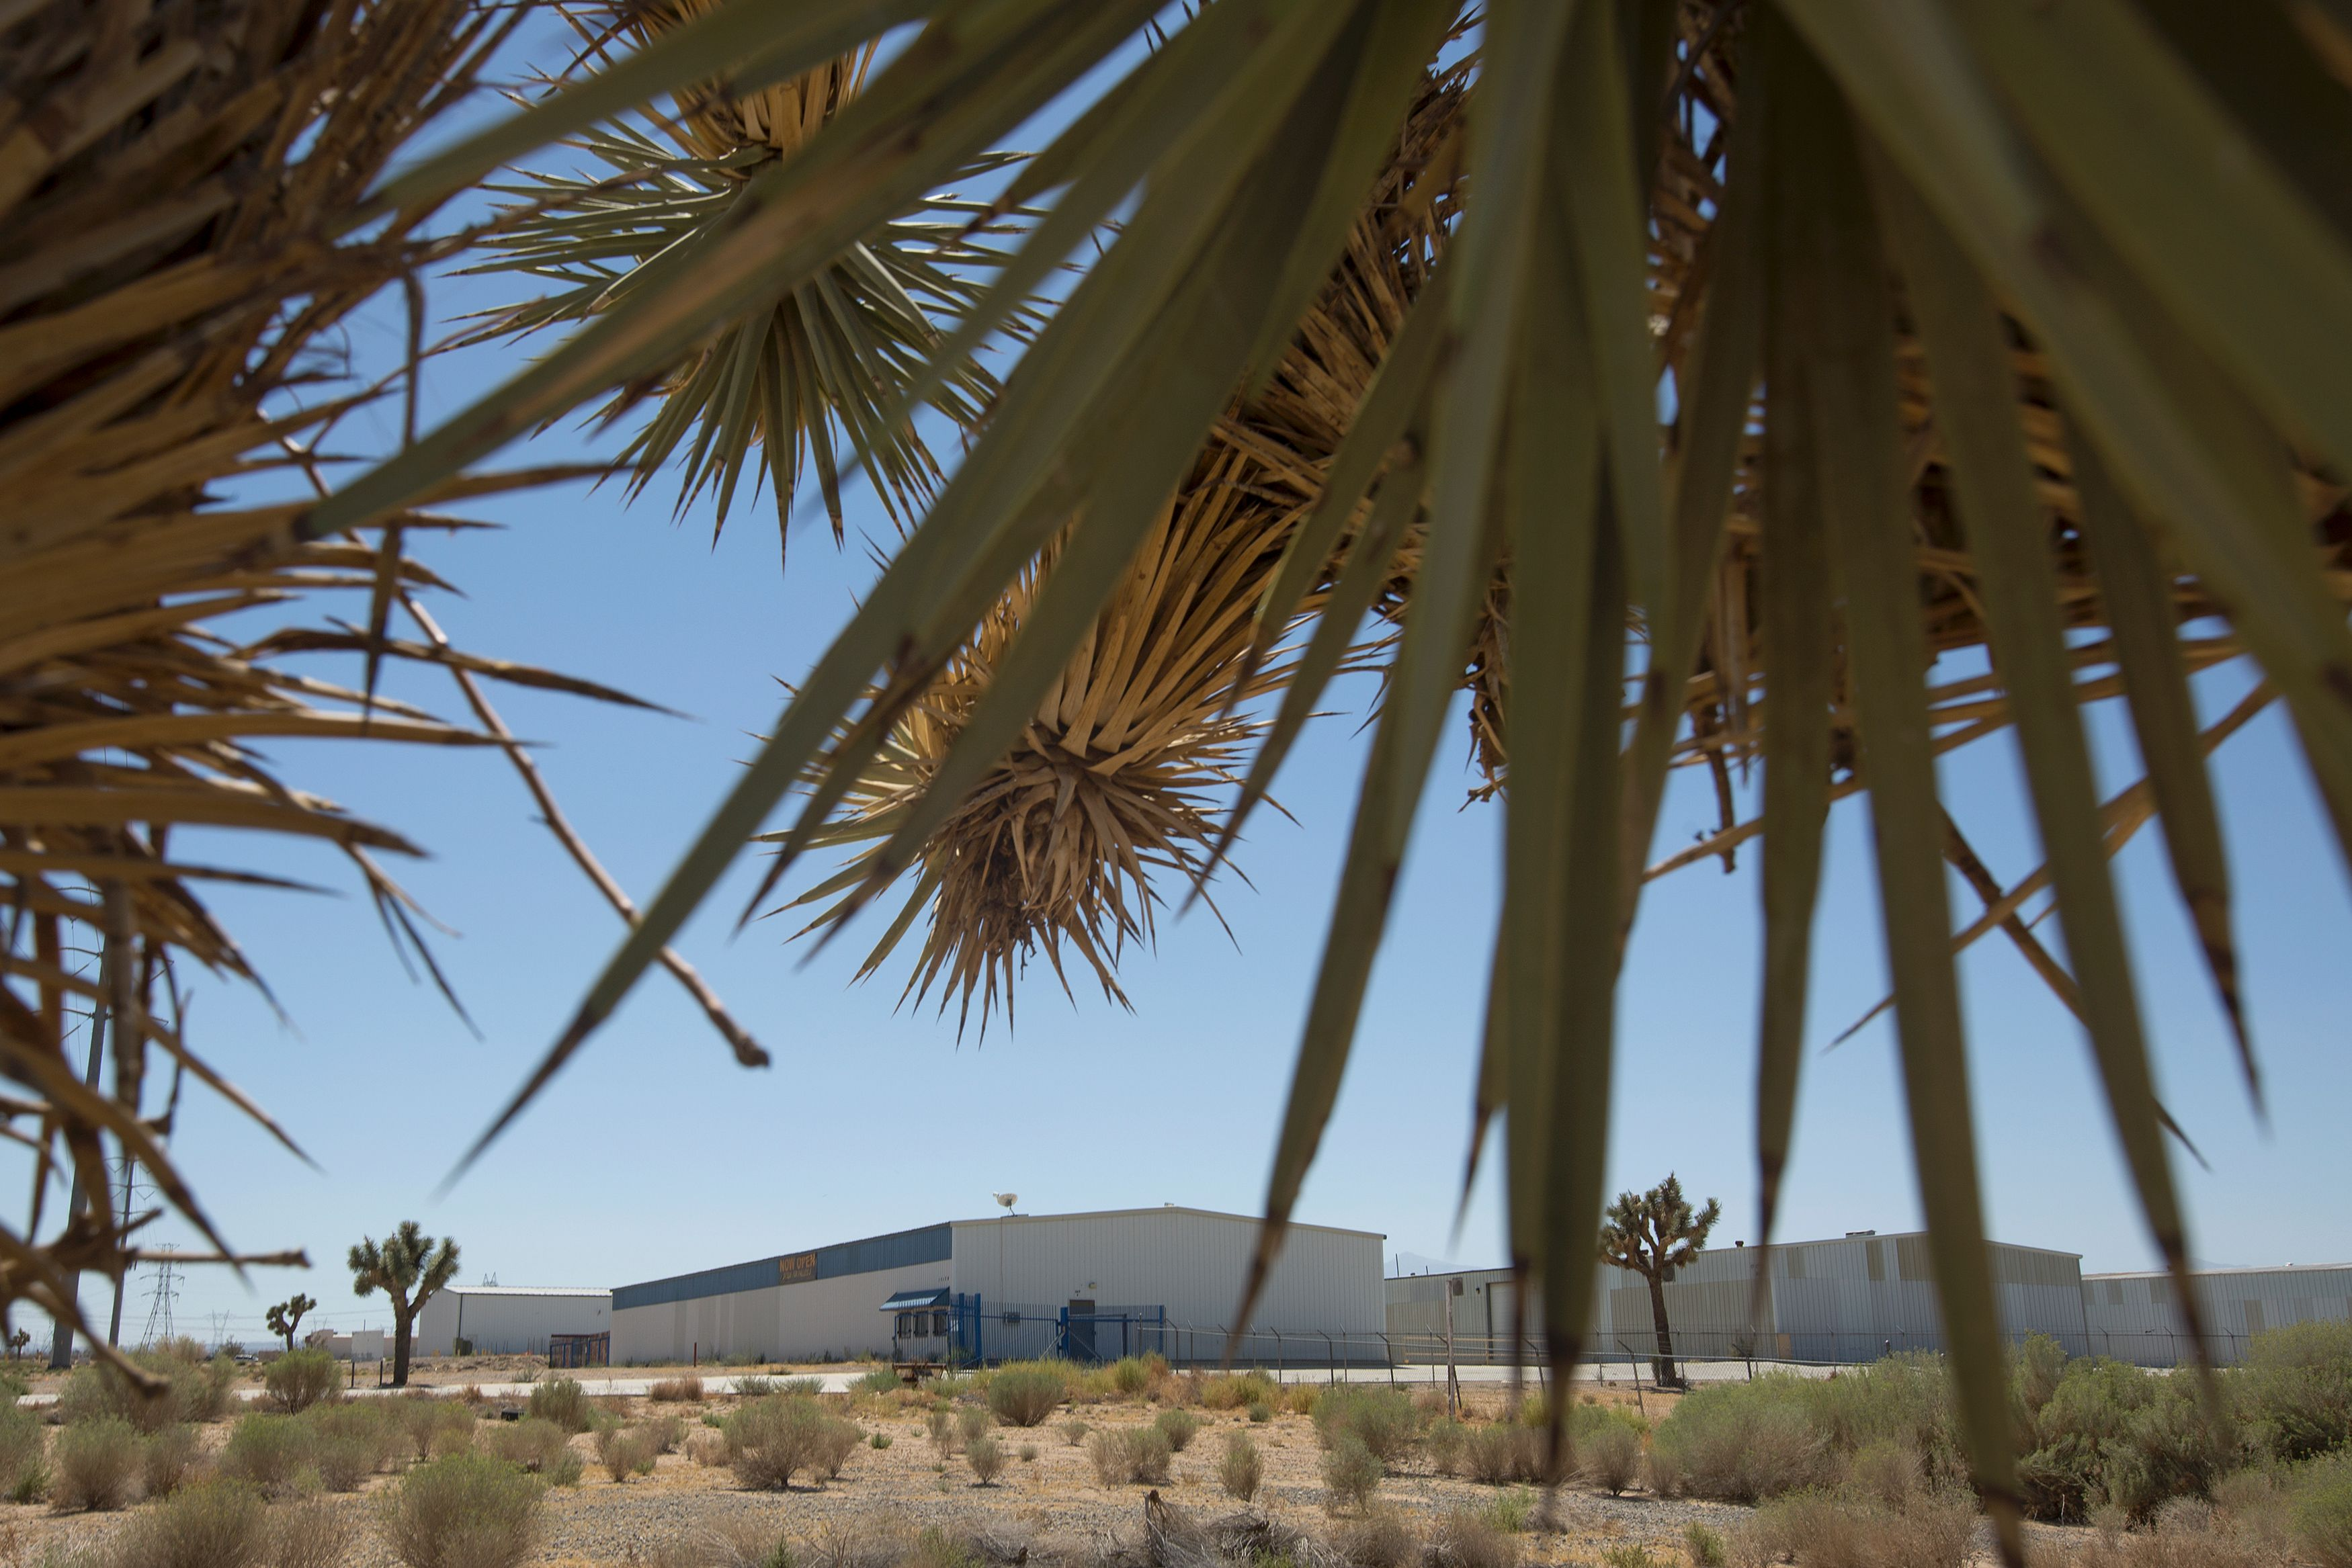 Buildings at the site of a future marijuana farm are framed by the branches of a Joshua tree in the  green zone,  an area designated by the city for the development of industrial scale marijuana cultivation, on Sept. 6, 2016 in Adelanto, Calif.